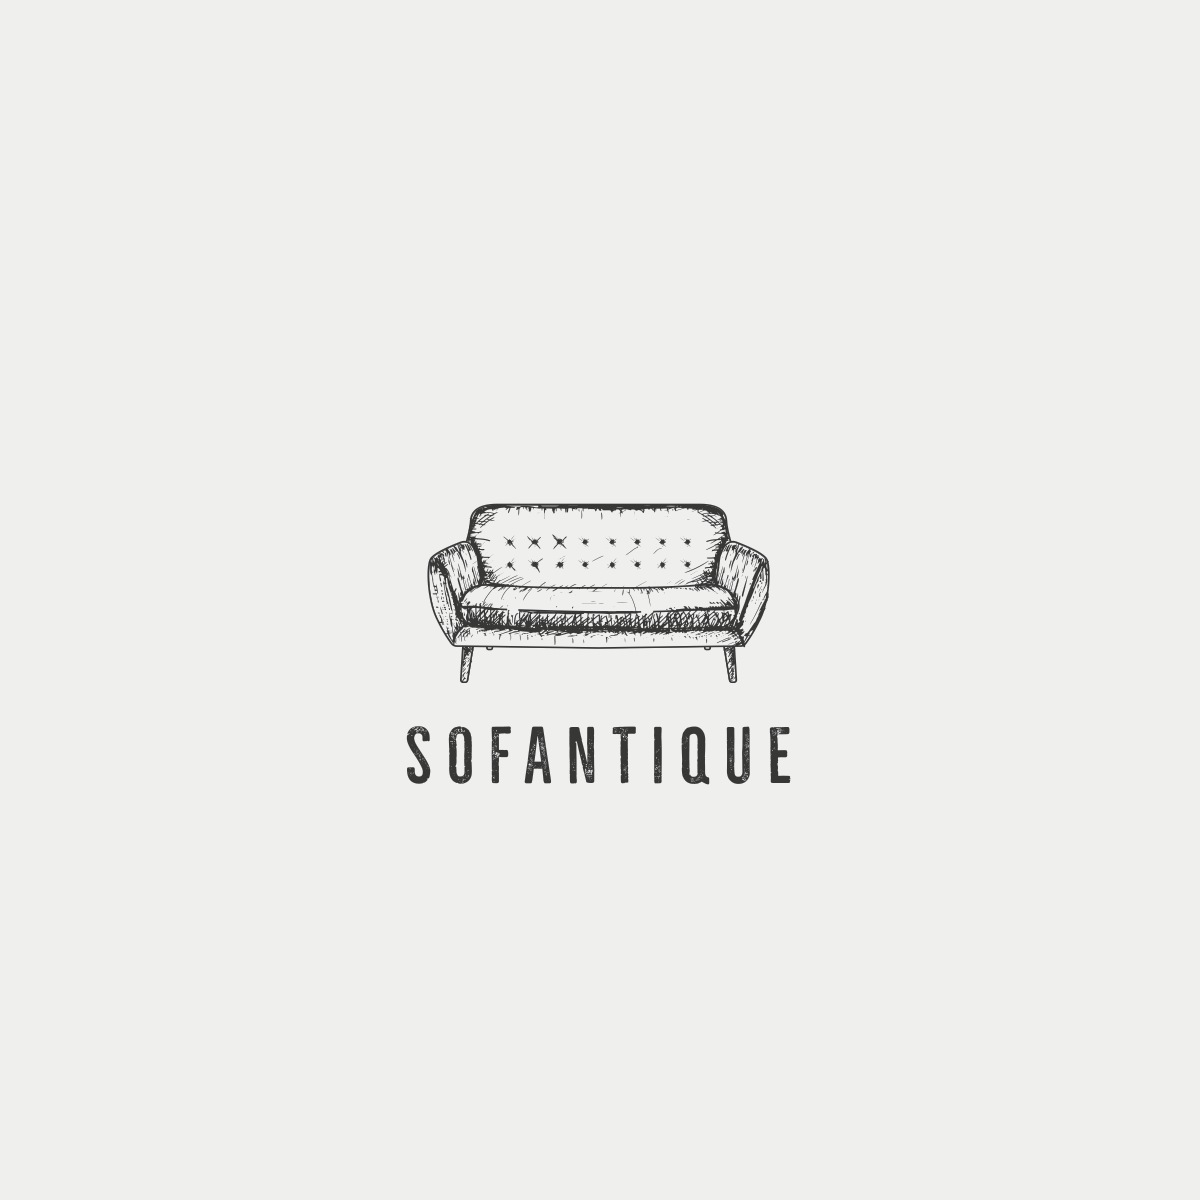 corporate vintage styles for soafantique logo